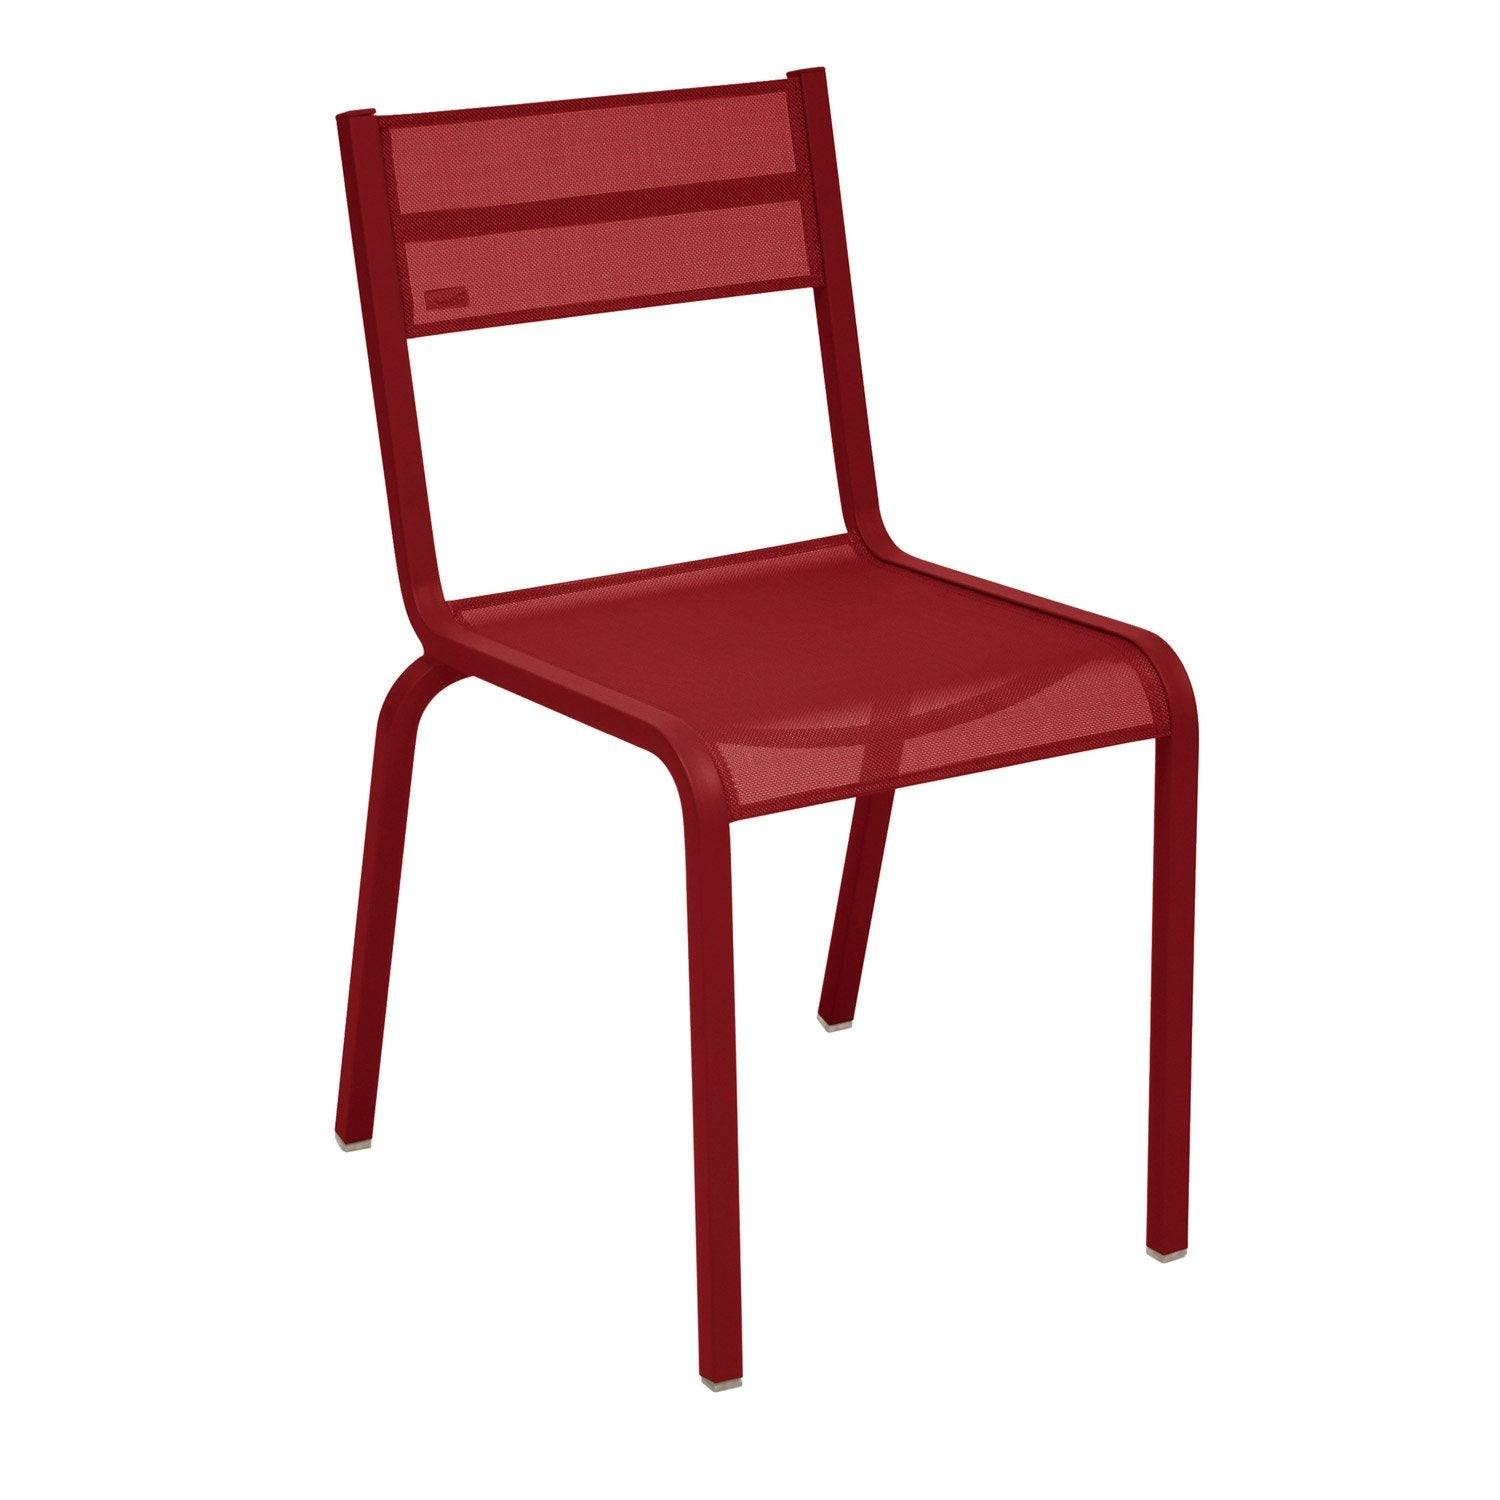 tabouret de bar rouge ikea excellent design tabouret metallique rouge perpignan canape. Black Bedroom Furniture Sets. Home Design Ideas